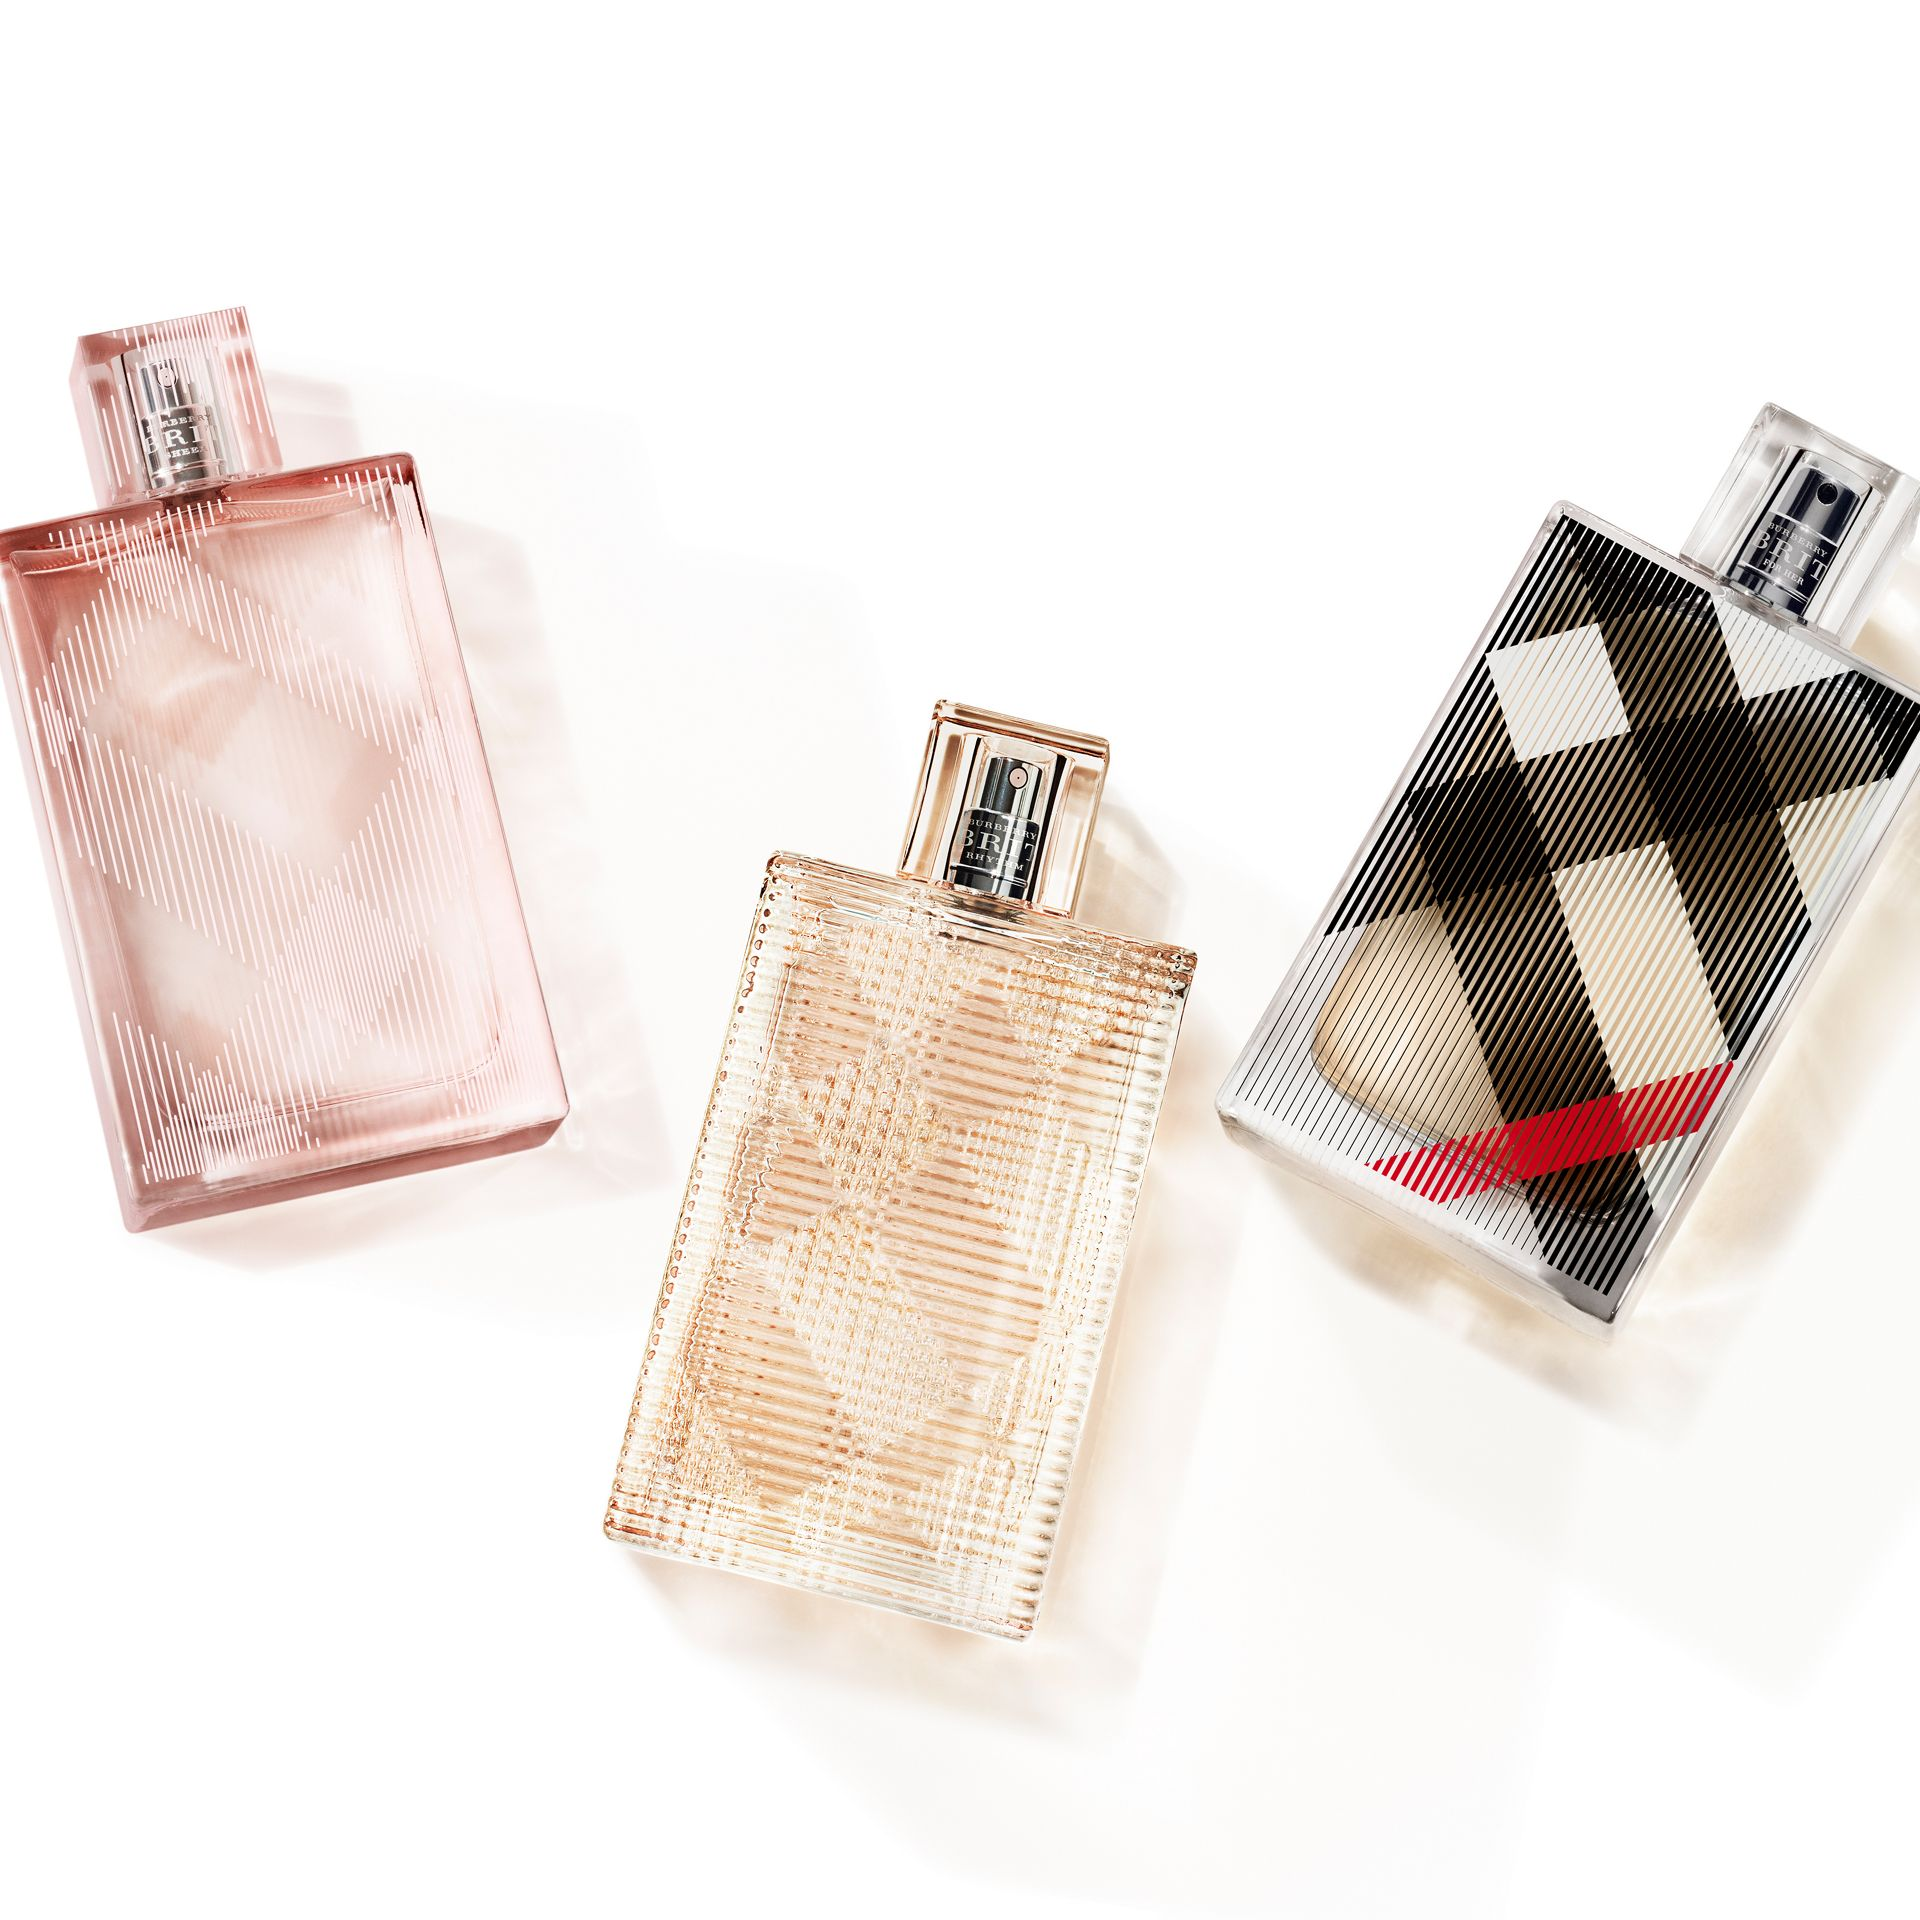 Burberry Brit Sheer Eau de Toilette 100ml - Women | Burberry United Kingdom - gallery image 1